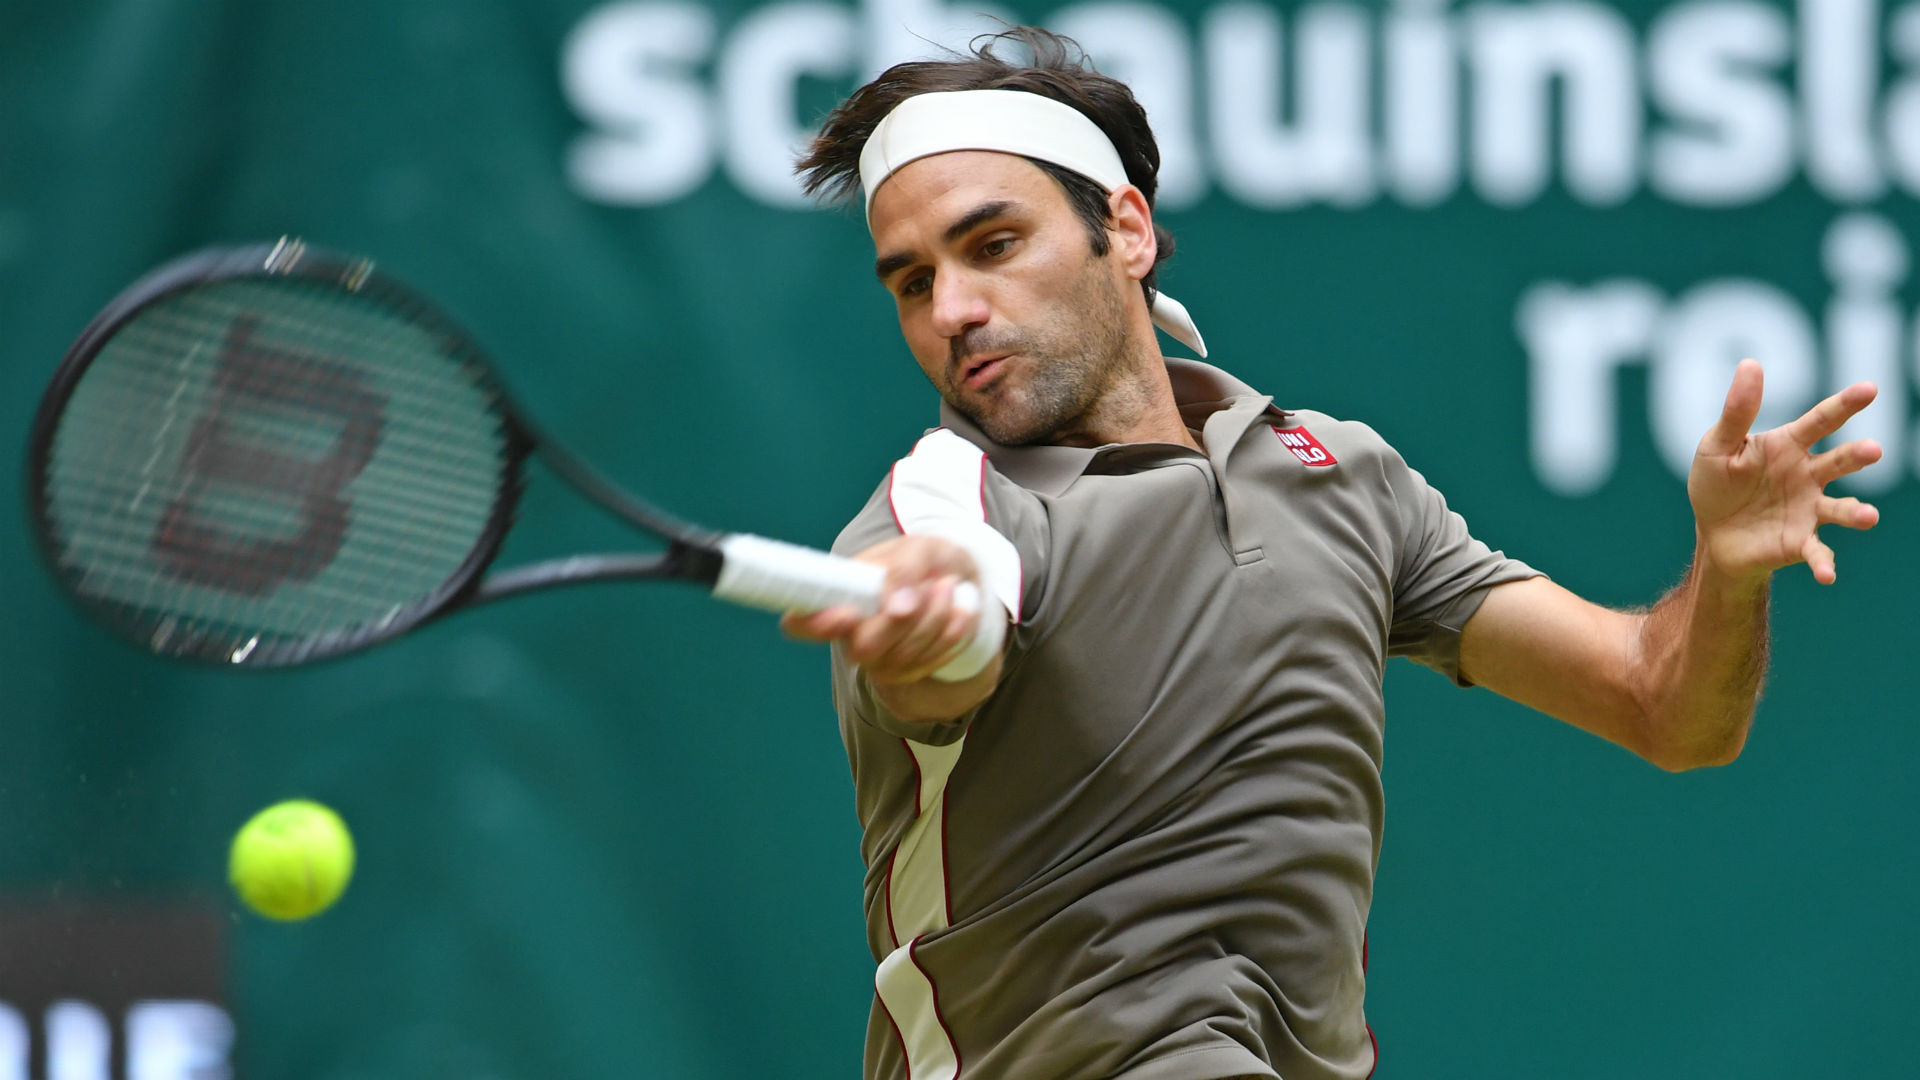 Jo-Wilfried Tsonga was unable to pull off a third consecutive win over Roger Federer as the top seed reached the last eight in Halle.